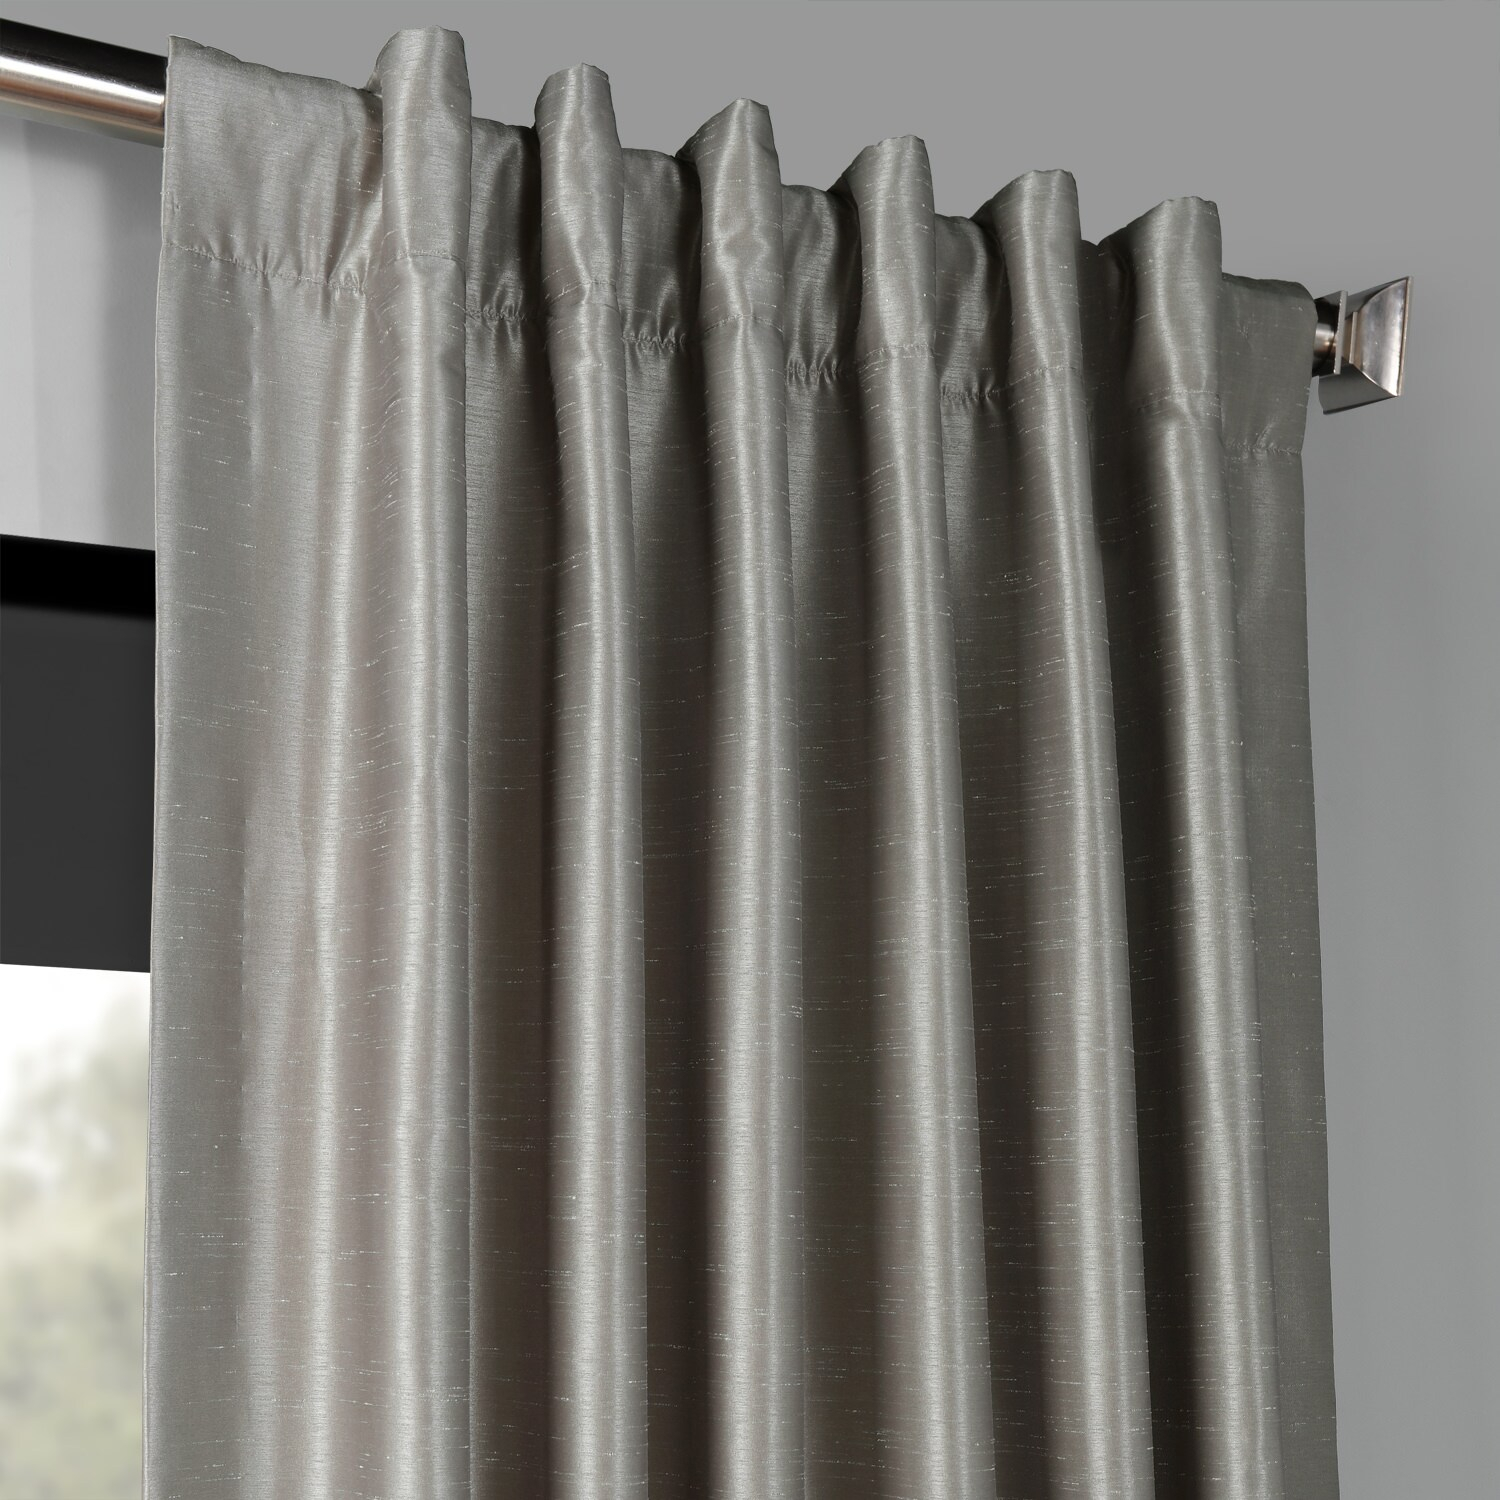 Details About Vintage Textured Faux Dupioni Silk Blackout C With Regard To Vintage Faux Textured Dupioni Silk Curtain Panels (View 24 of 30)